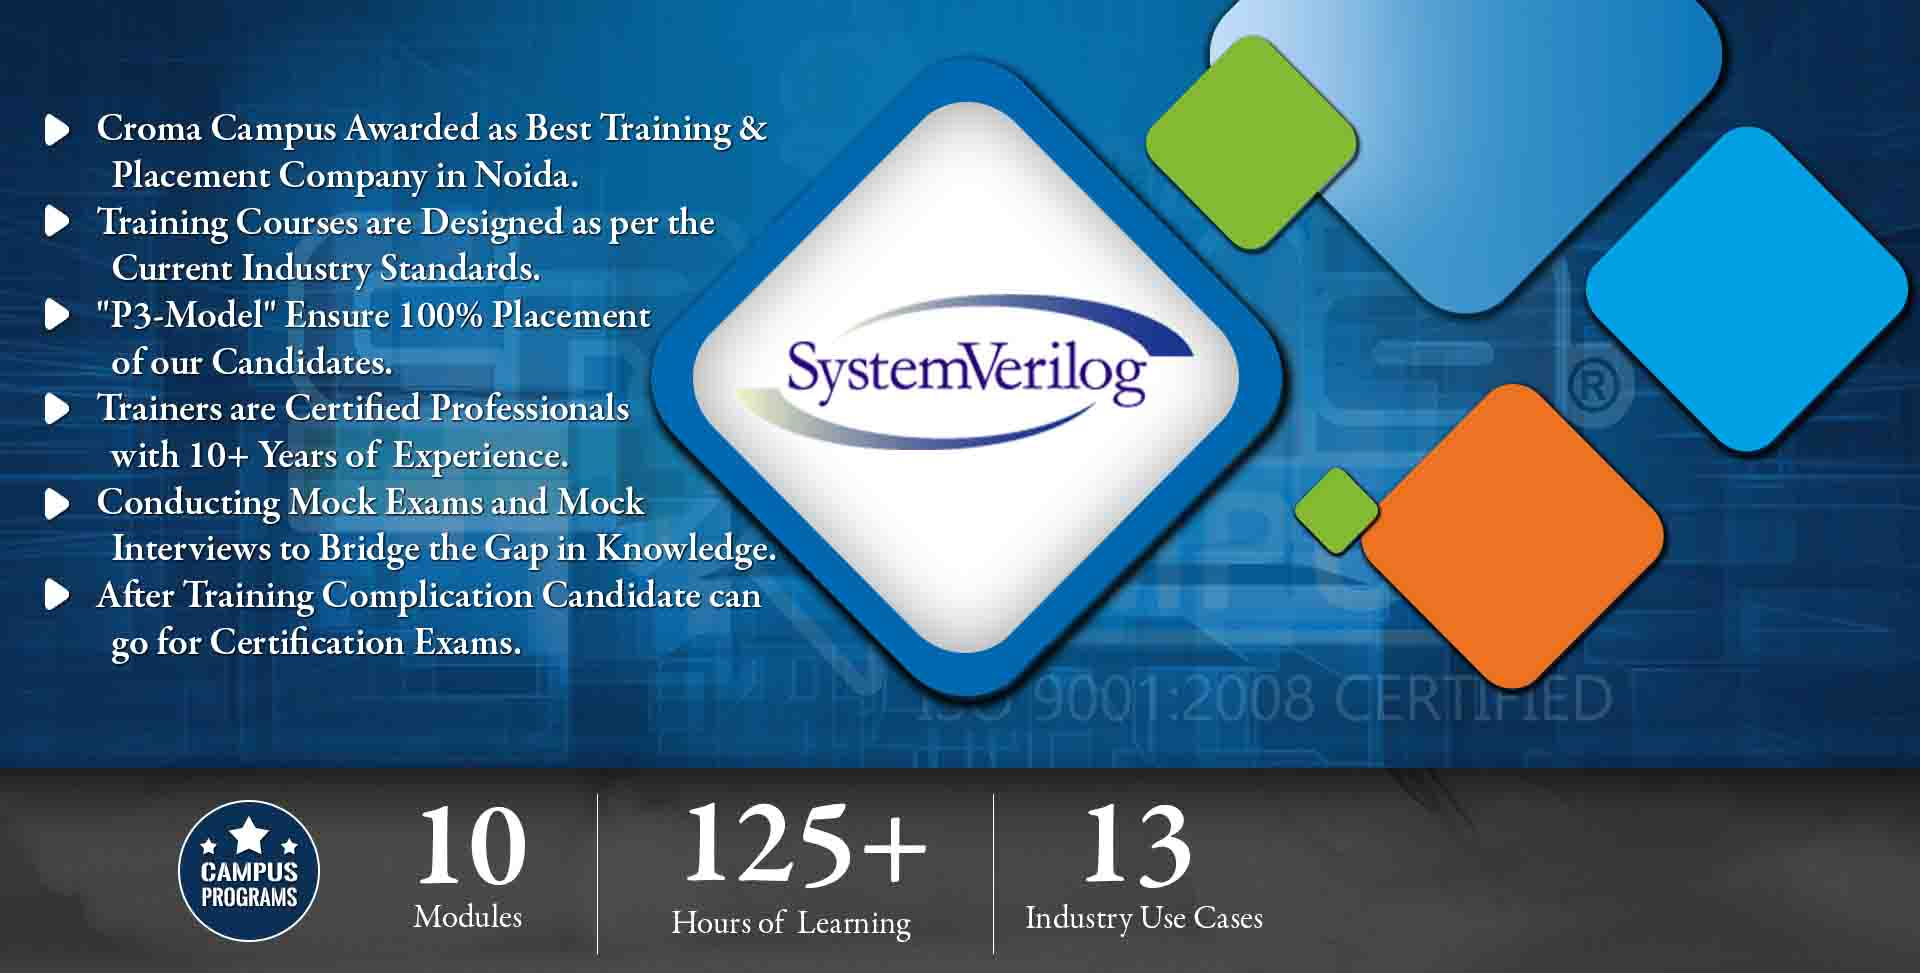 System Verilog Training in Noida- Croma Campus